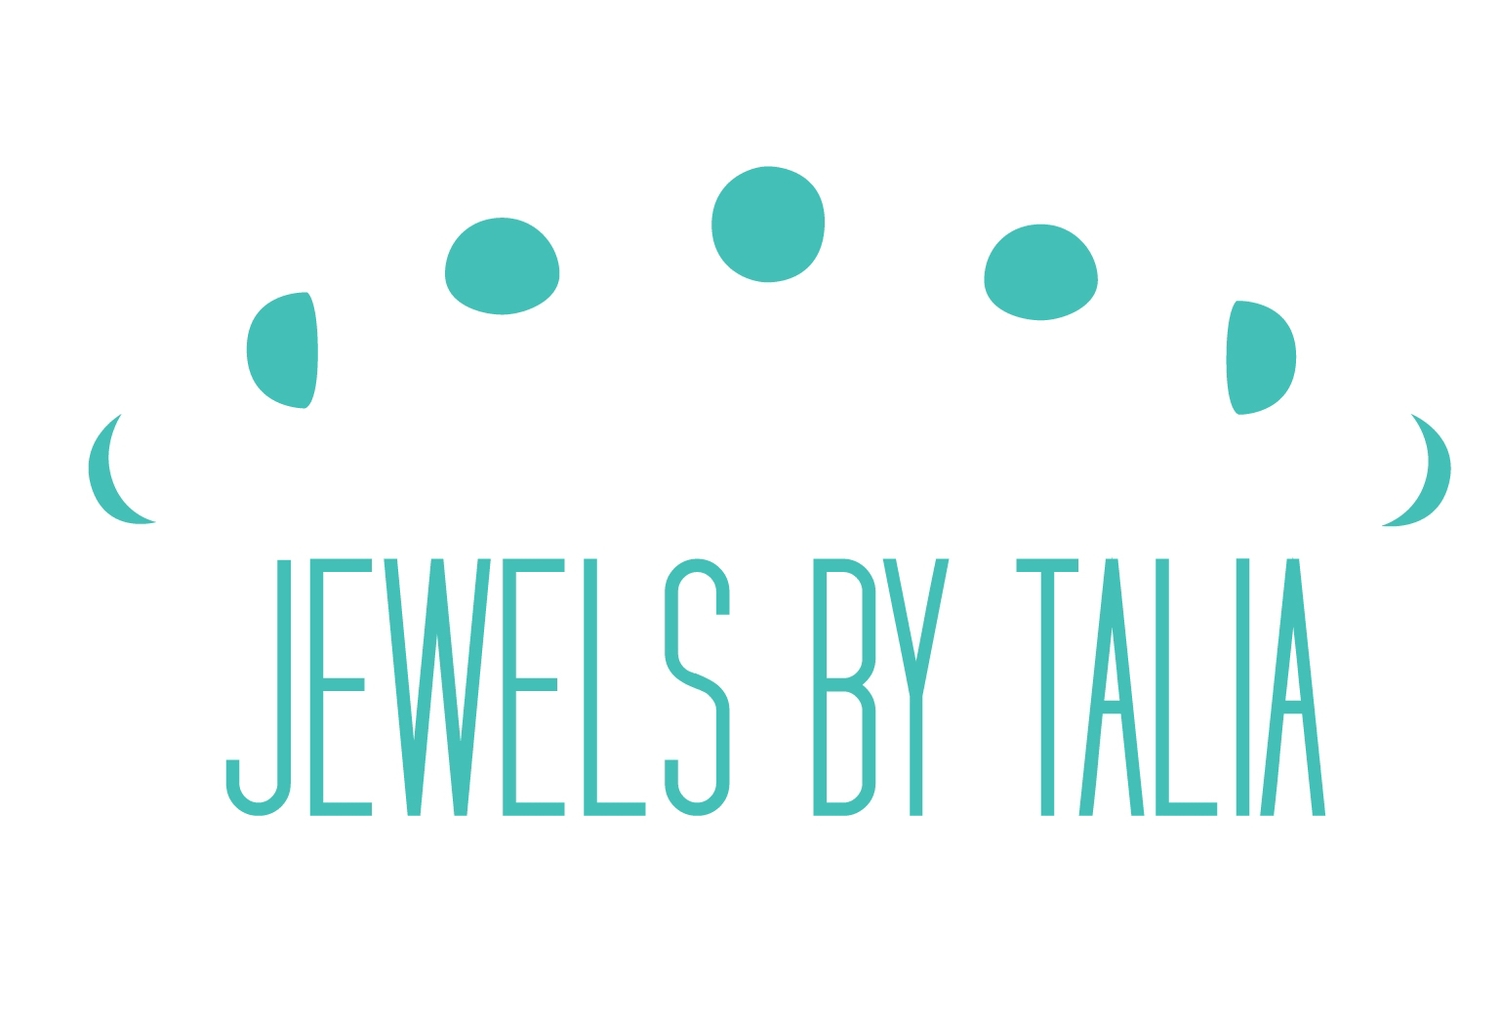 Jewels by Talia